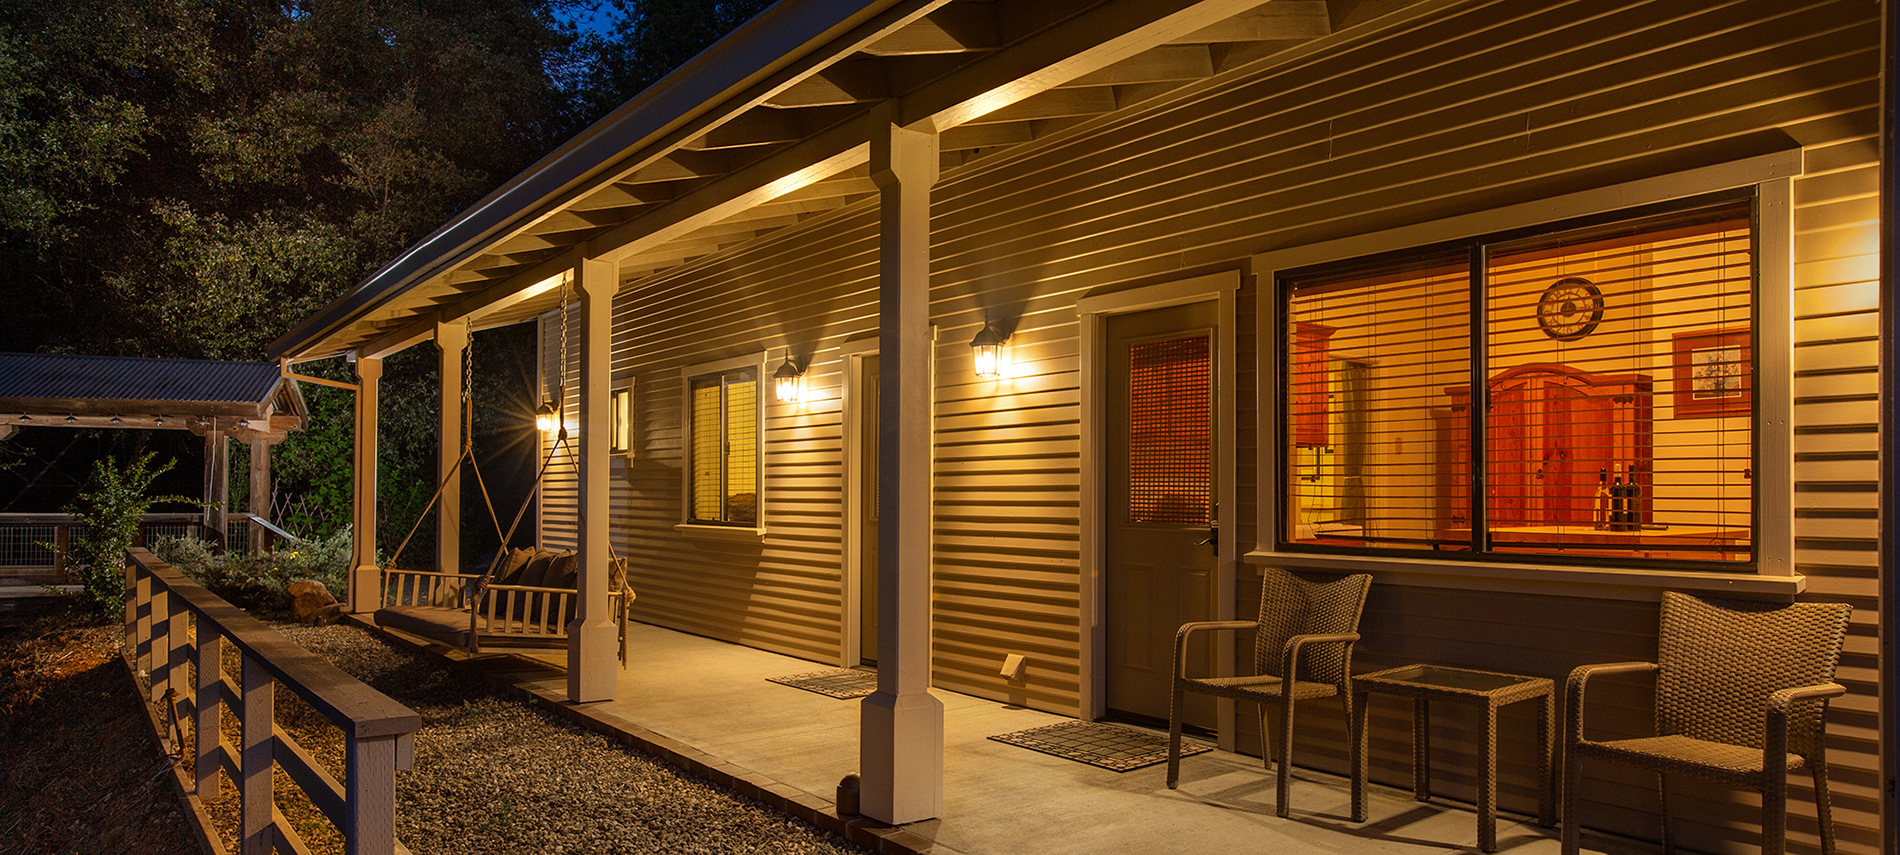 Exterior view of cabins at night, with kitchen visible through window.